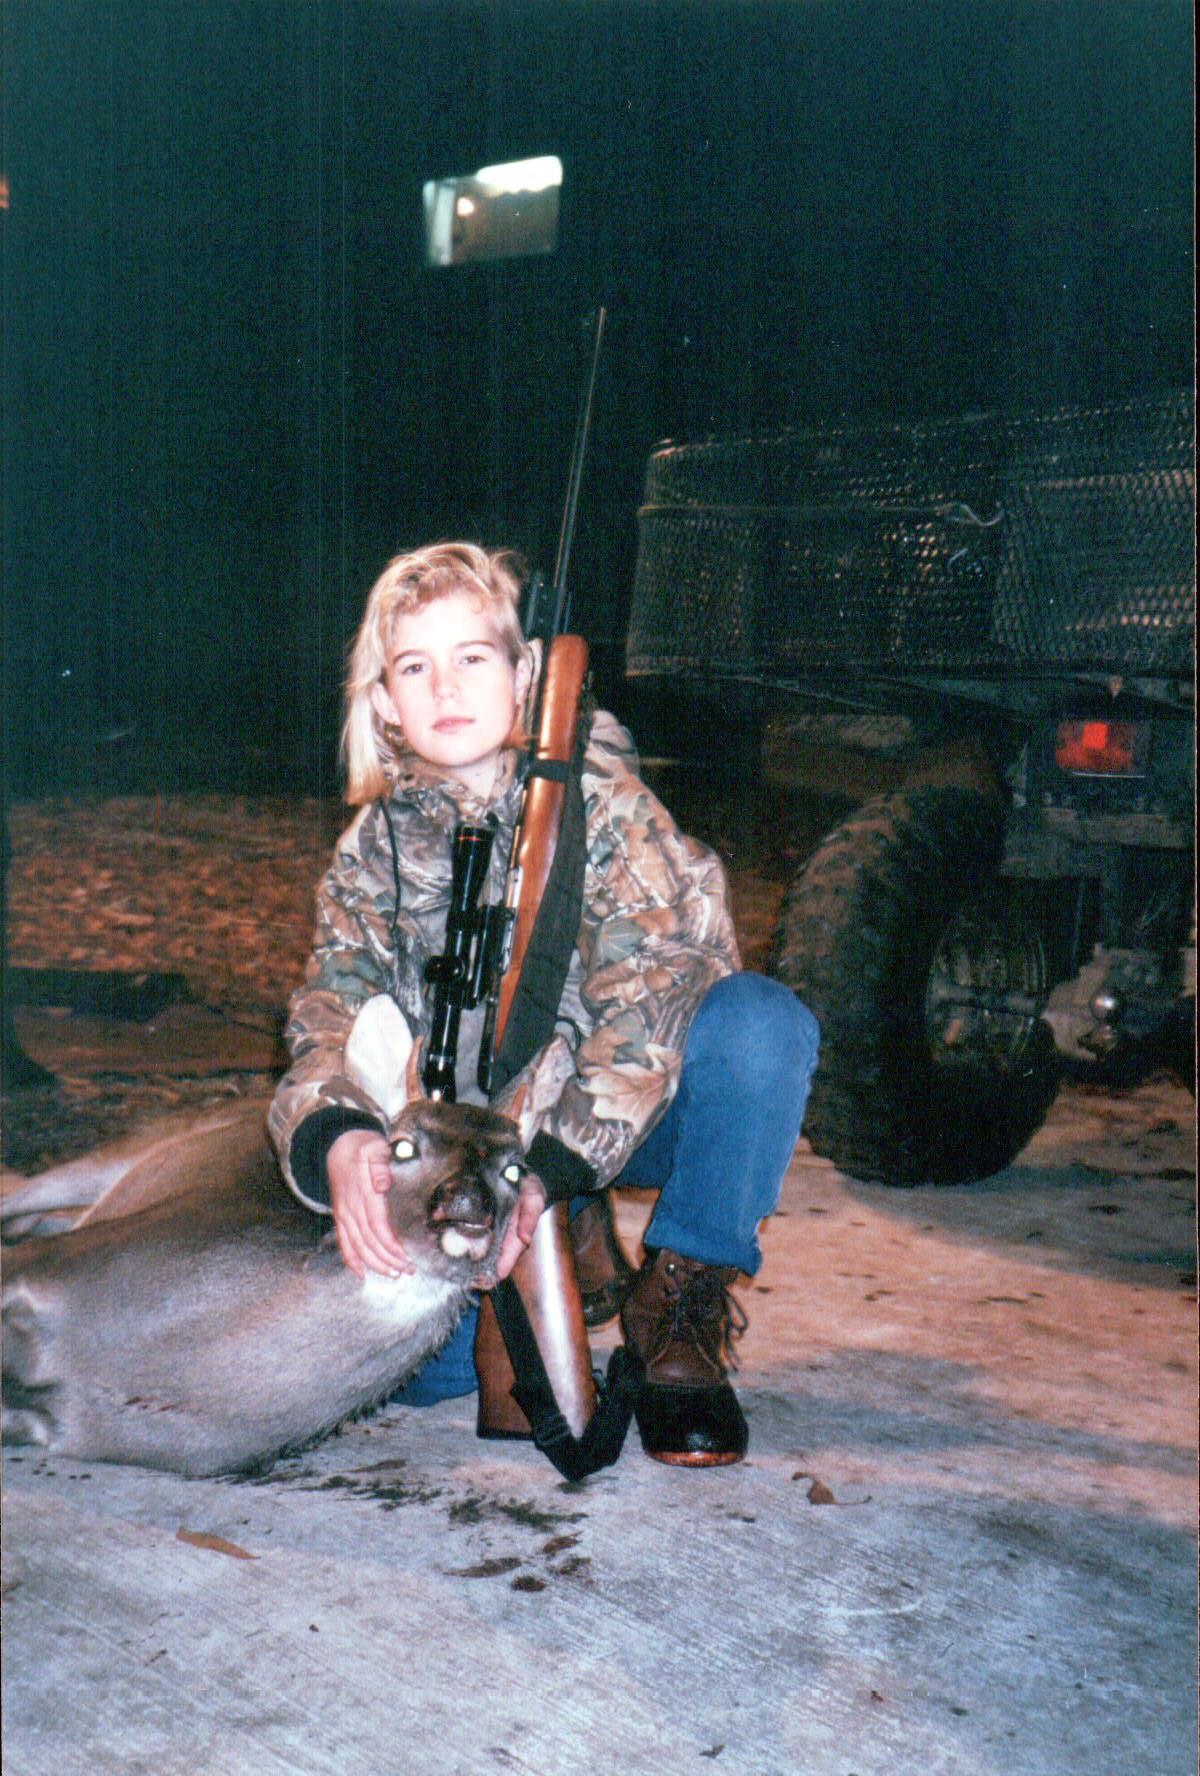 Don't mess with me, I'm 11 here and serious about deer hunting.